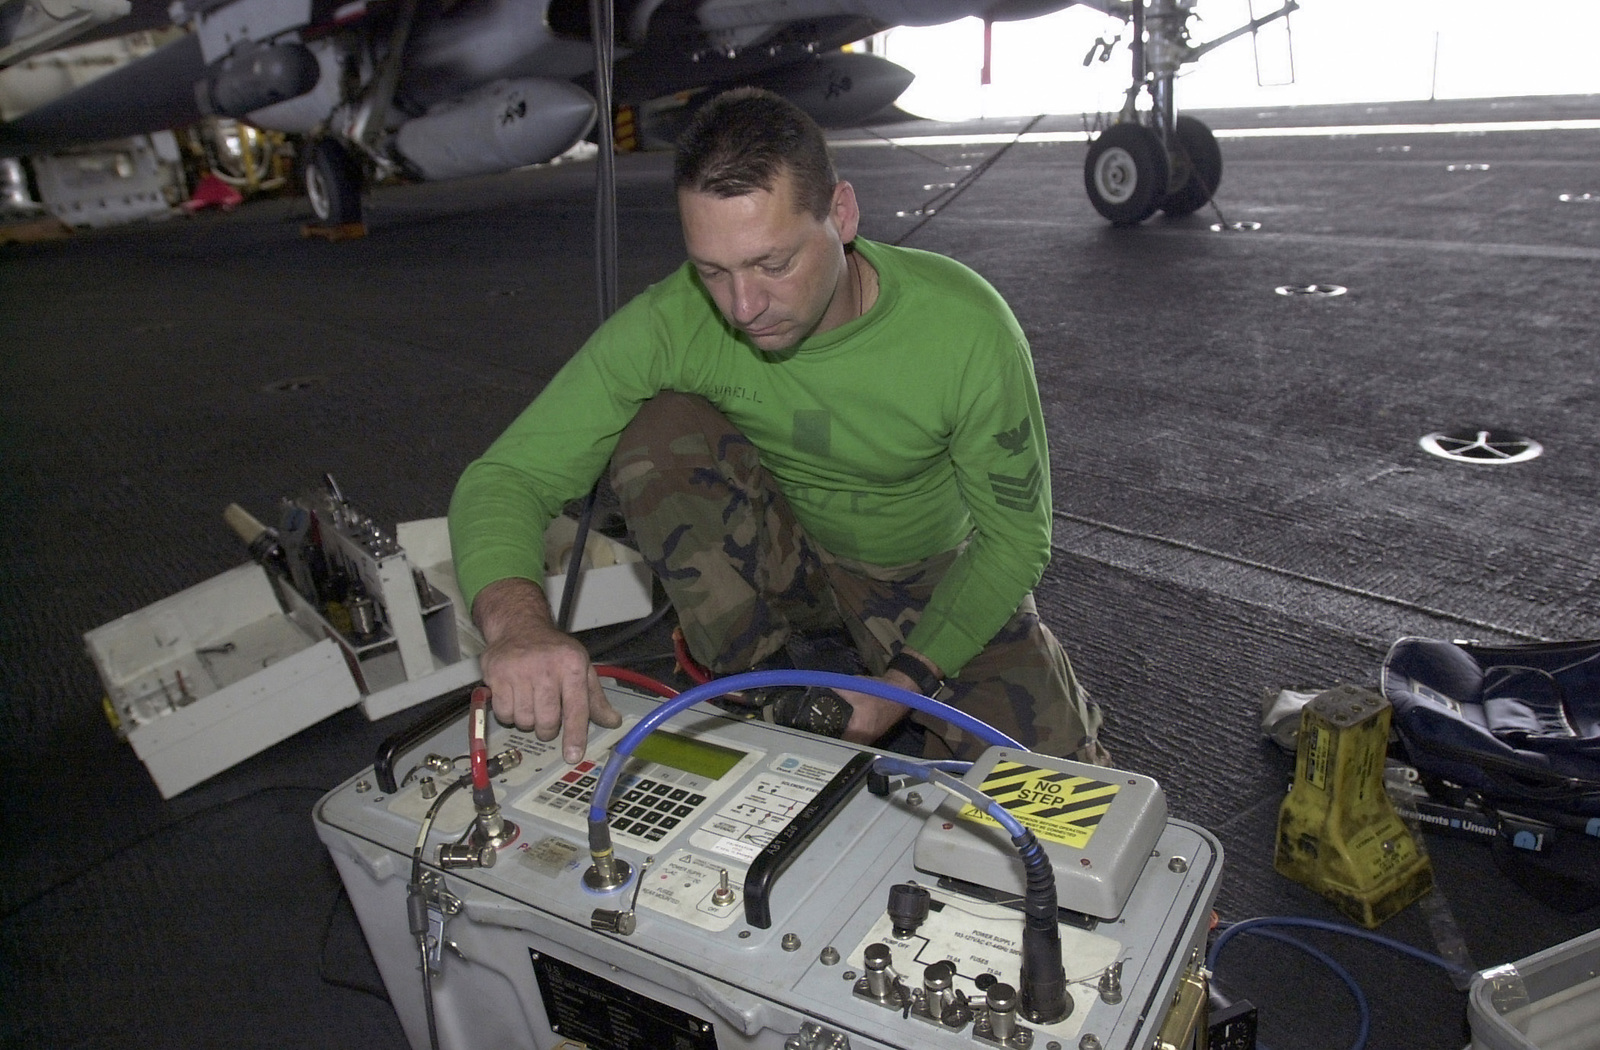 Aviation Electrician's Mate First Class PETTY Officer (PO1) Edward Harrell, USN, Fighter Squadron 31 (VF-31), Tomcatters, tests the pilot system and static system on the F-14 Tomcat in support of Rim of the Pacific 2000 (RIMPAC 2000), a major maritime exercise, in the vicinity of Hawaii. RIMPAC 2000 is designed to enhance the tactical capabilities of participating units in major aspects of maritime operations at sea